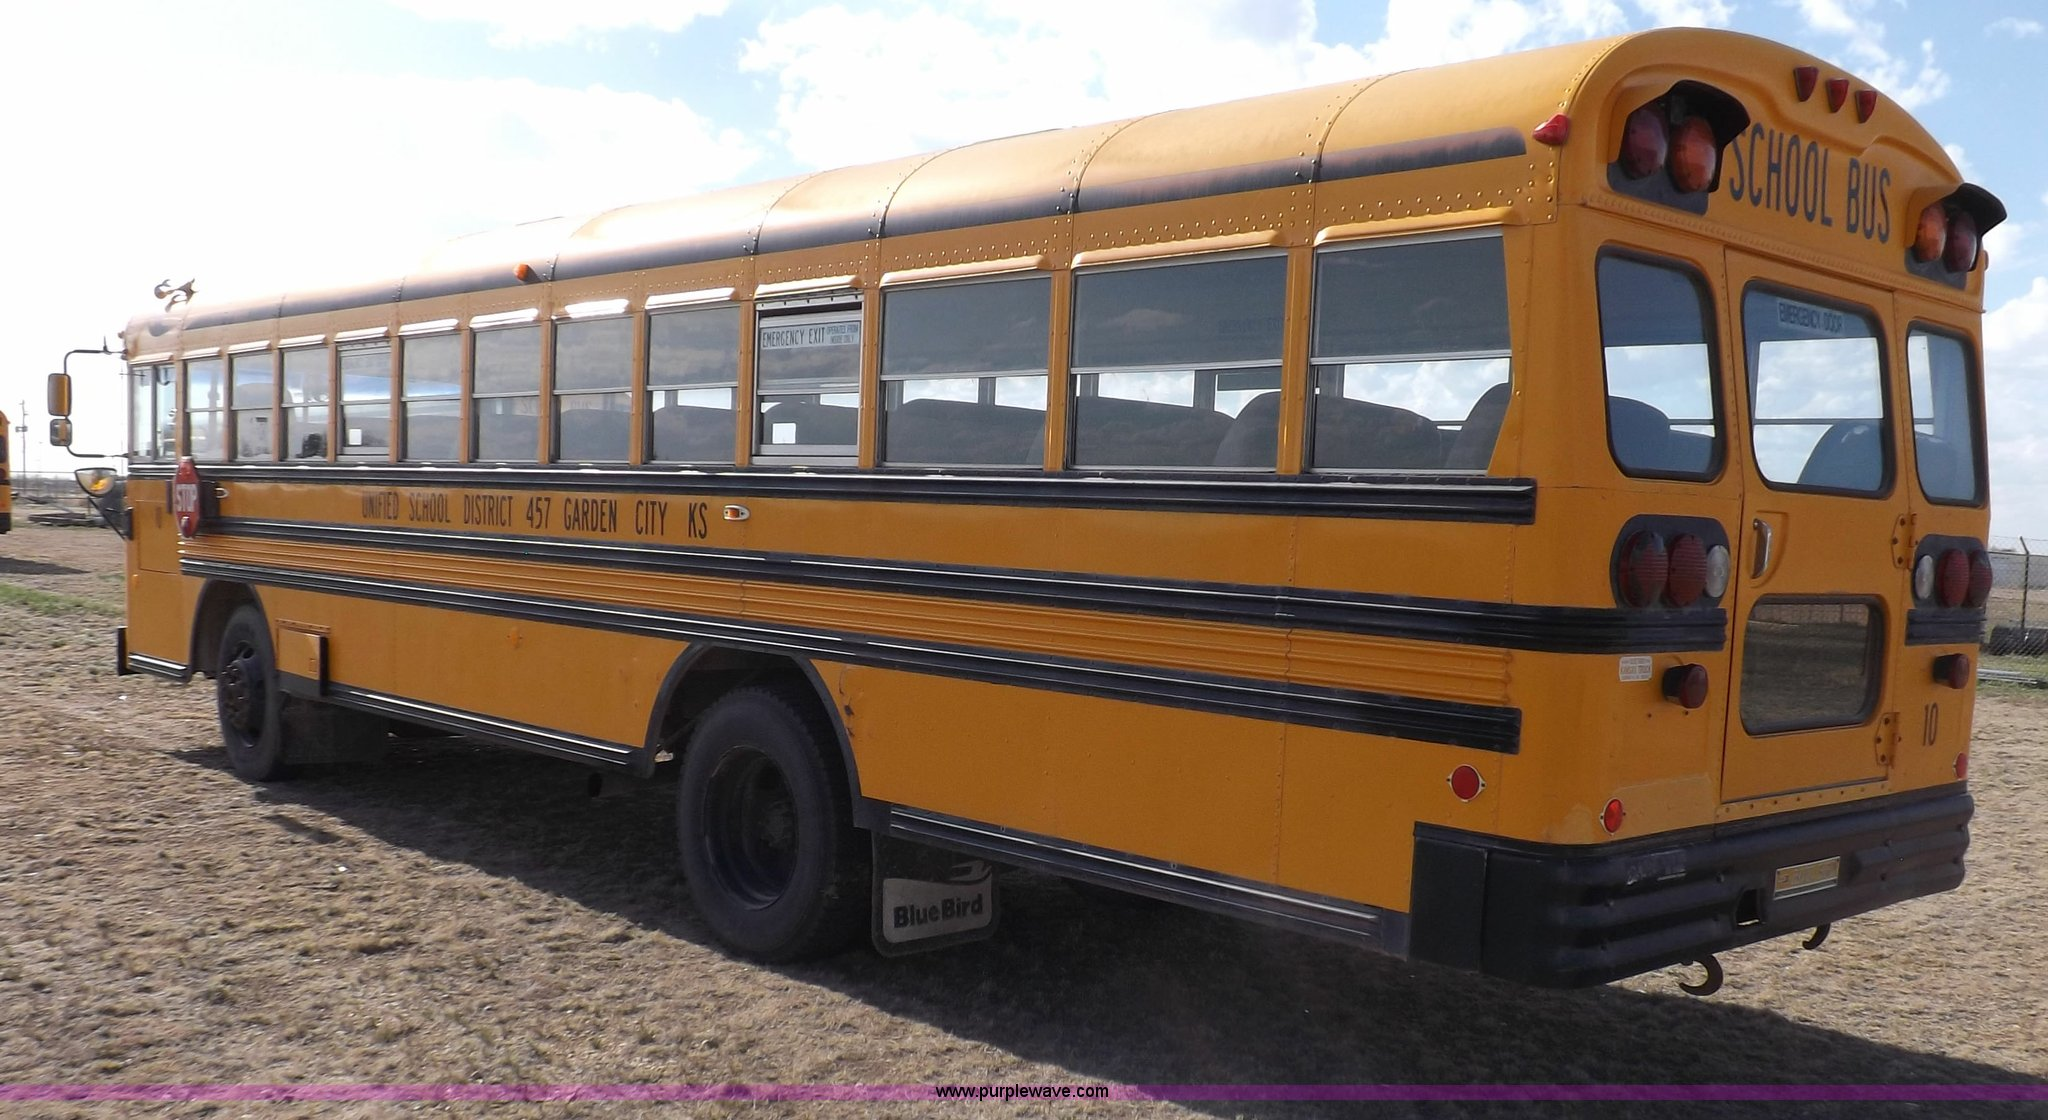 1992 Blue Bird school bus | Item H7123 | SOLD! July 9 Govern...